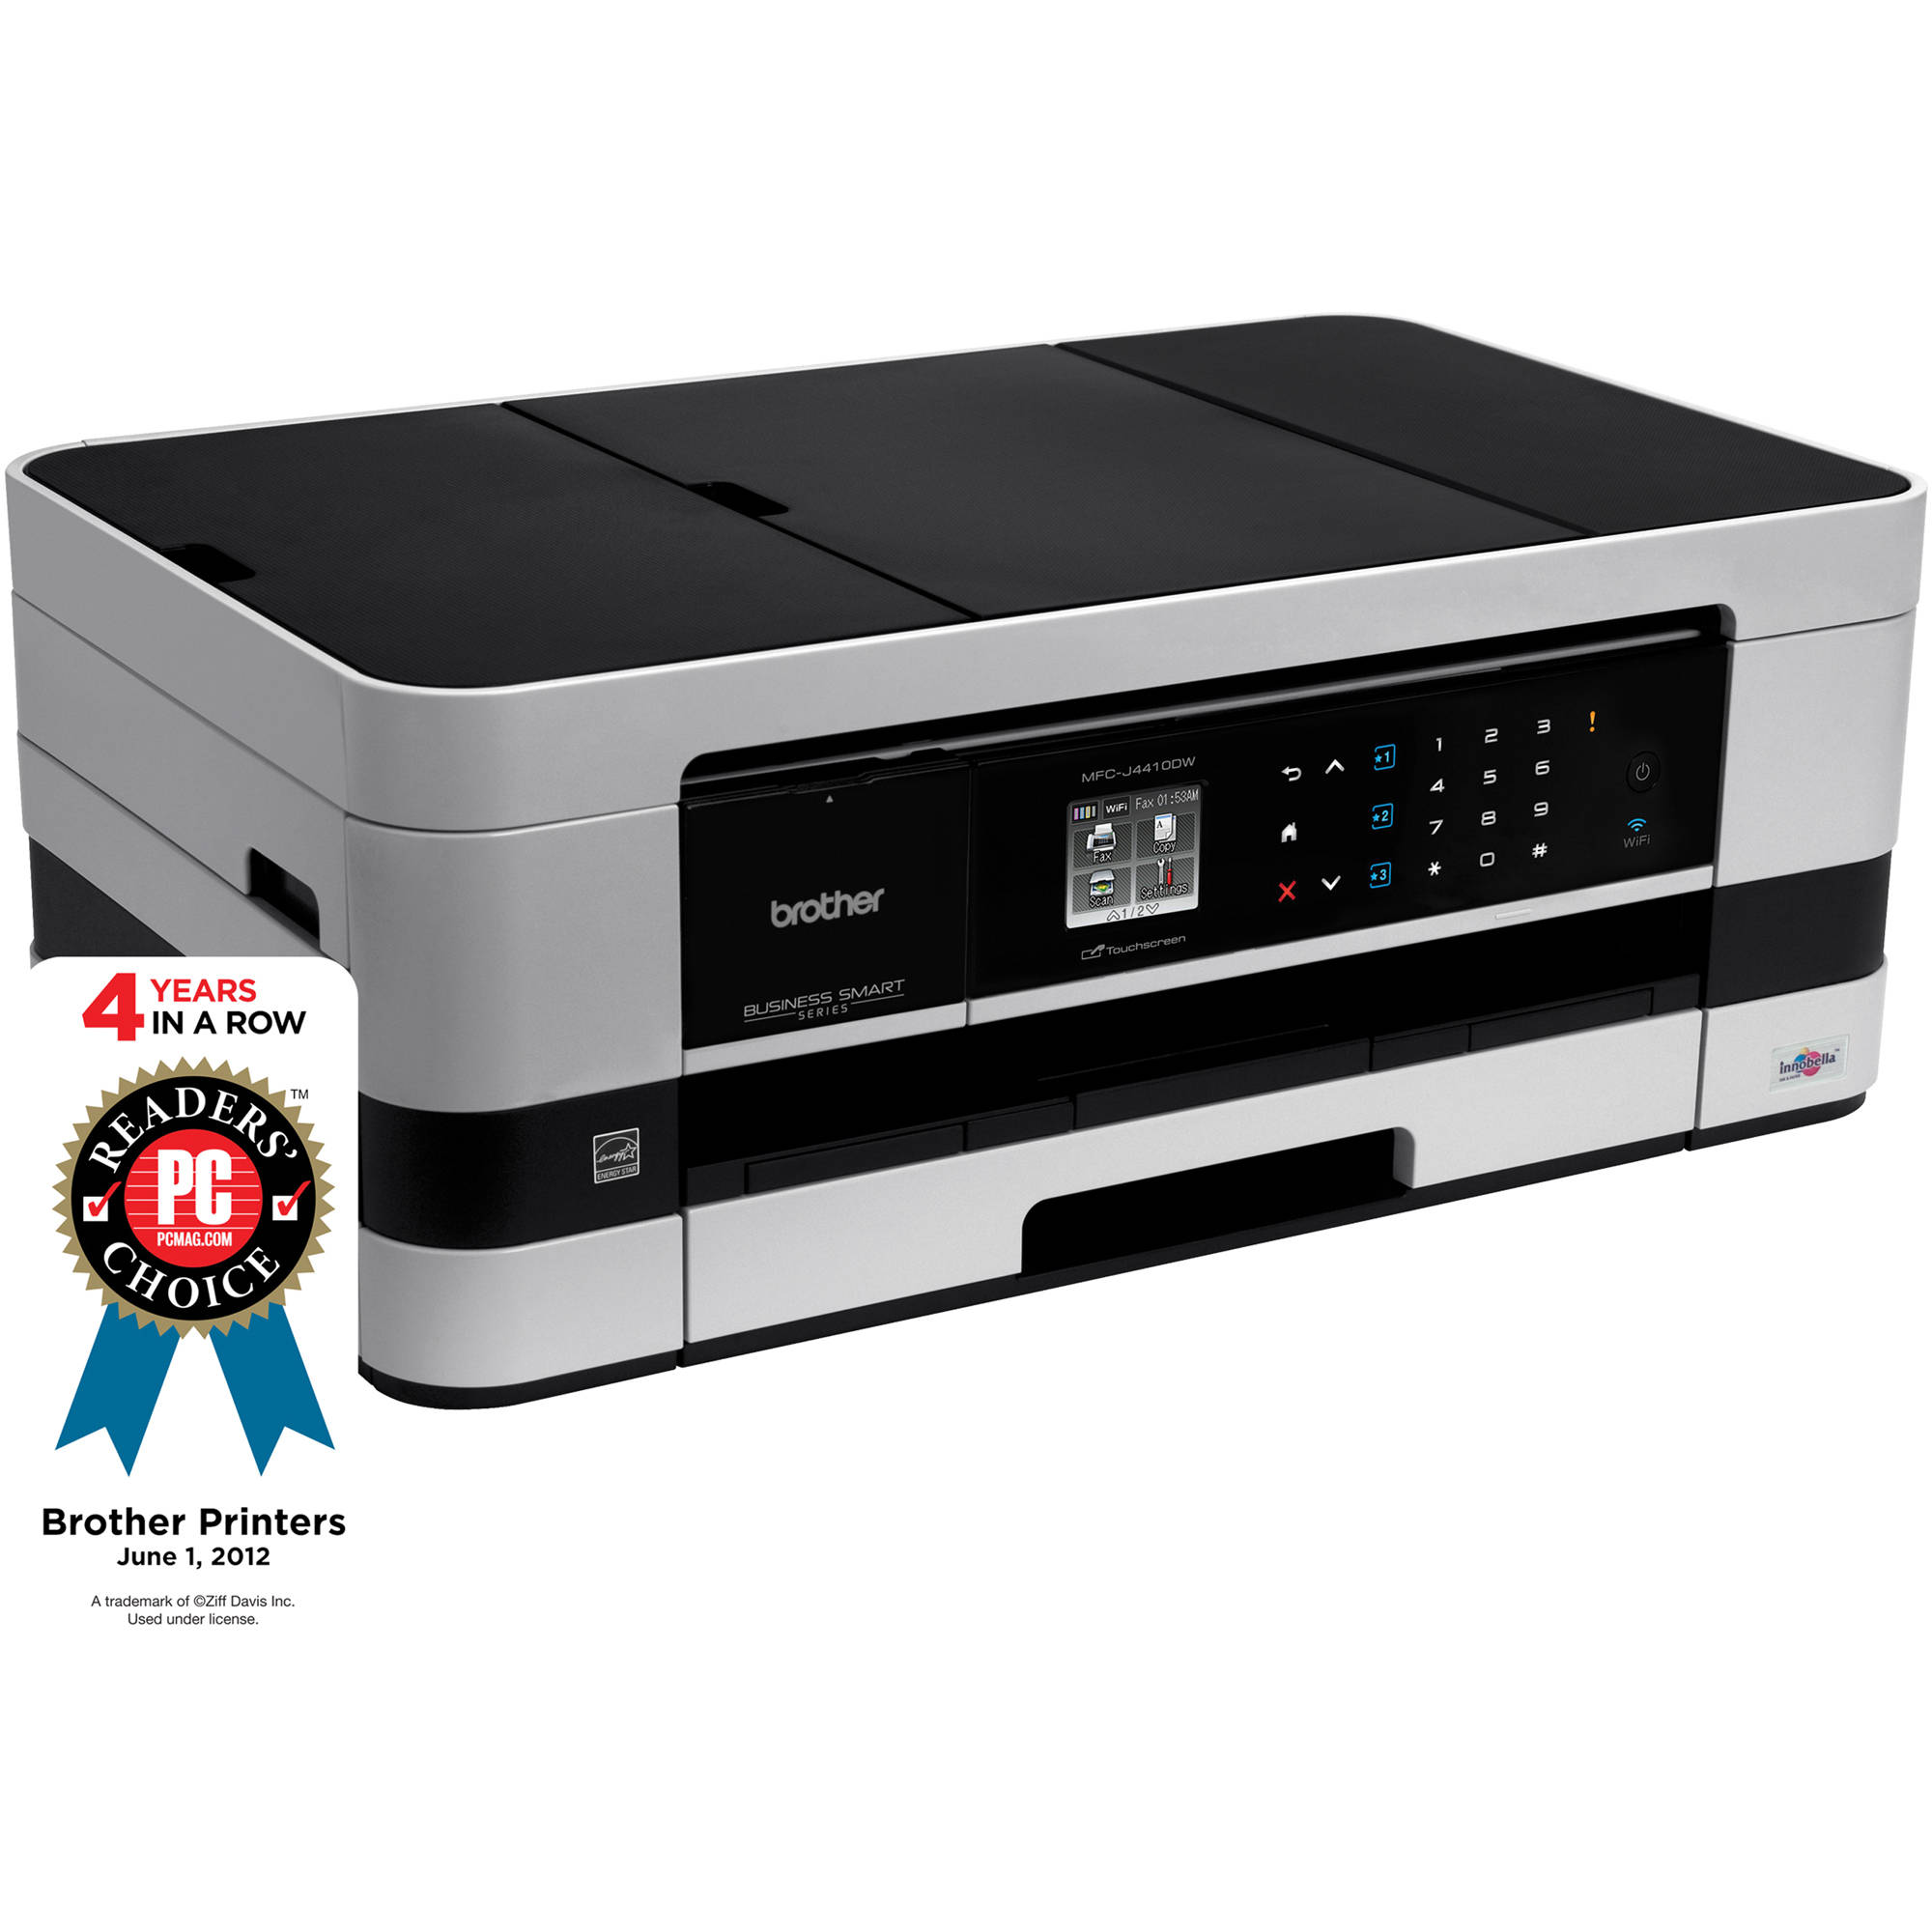 BROTHER MFC-J4410DW PRINTERSCANNER WINDOWS 8 X64 DRIVER DOWNLOAD